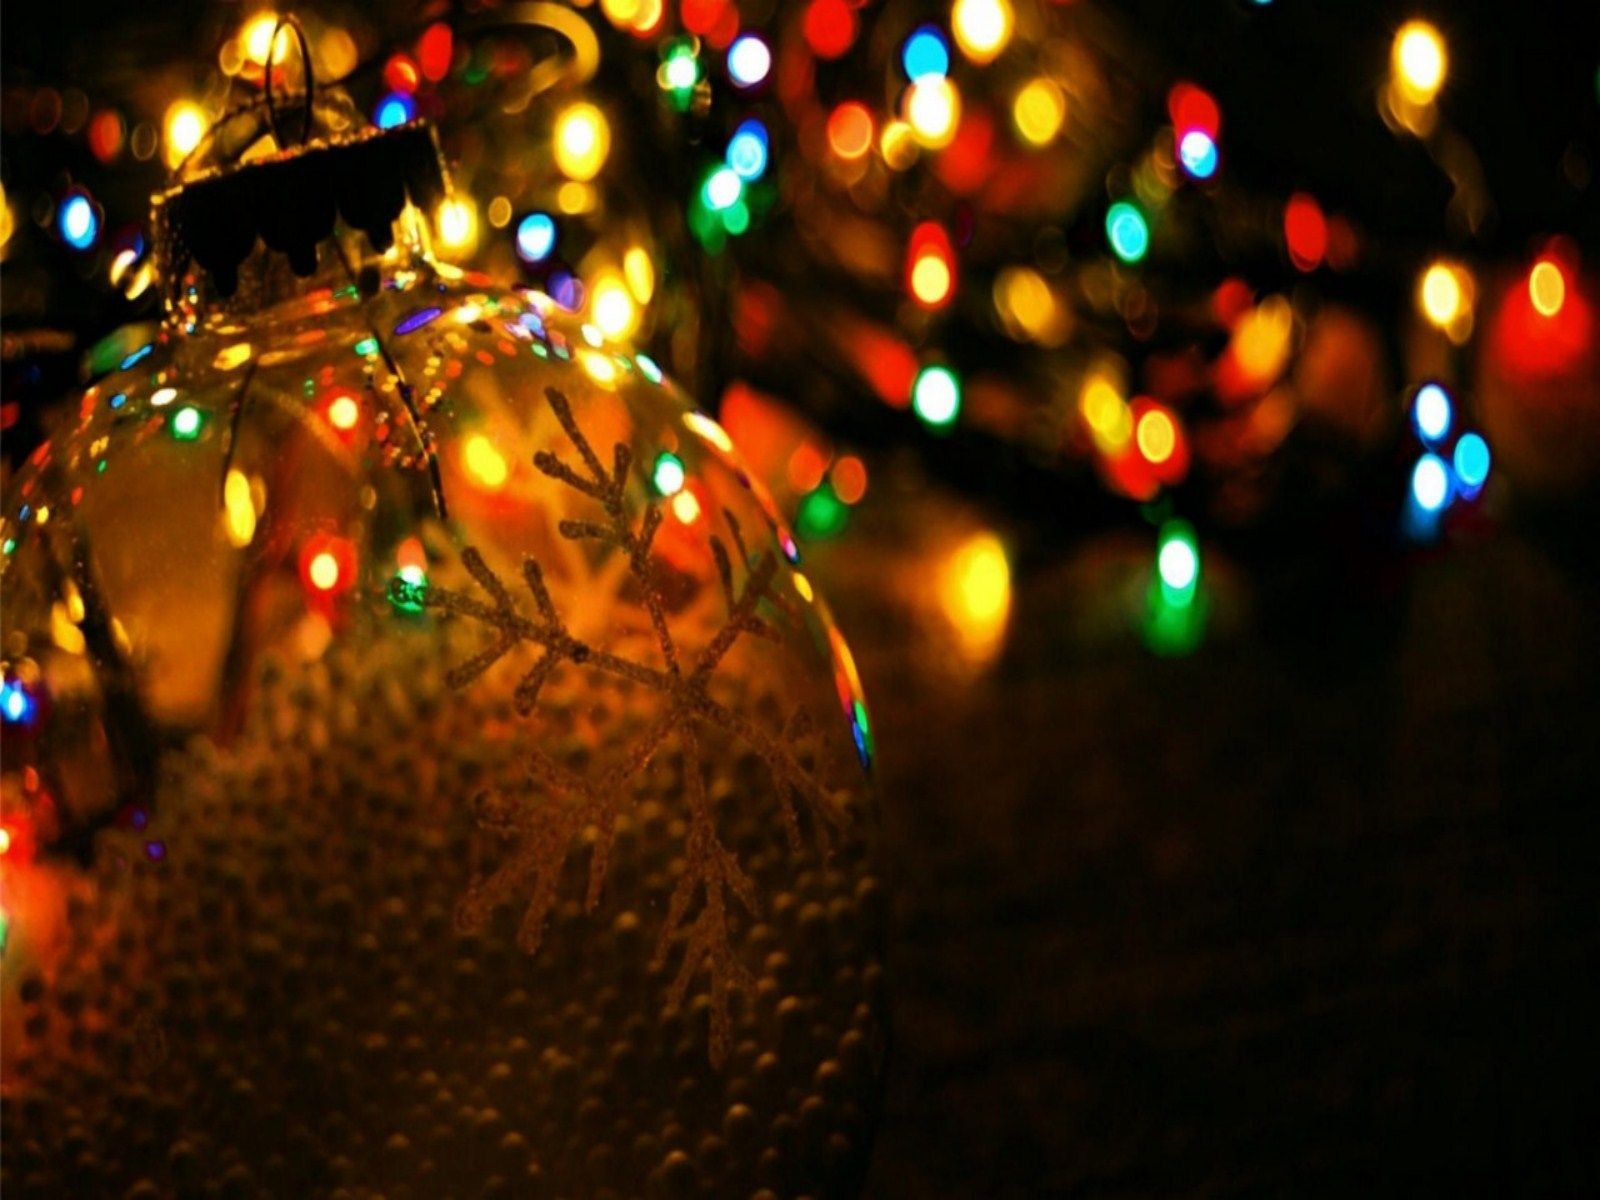 christmas lights photos | Christmas Lights Background Wallpaper ...